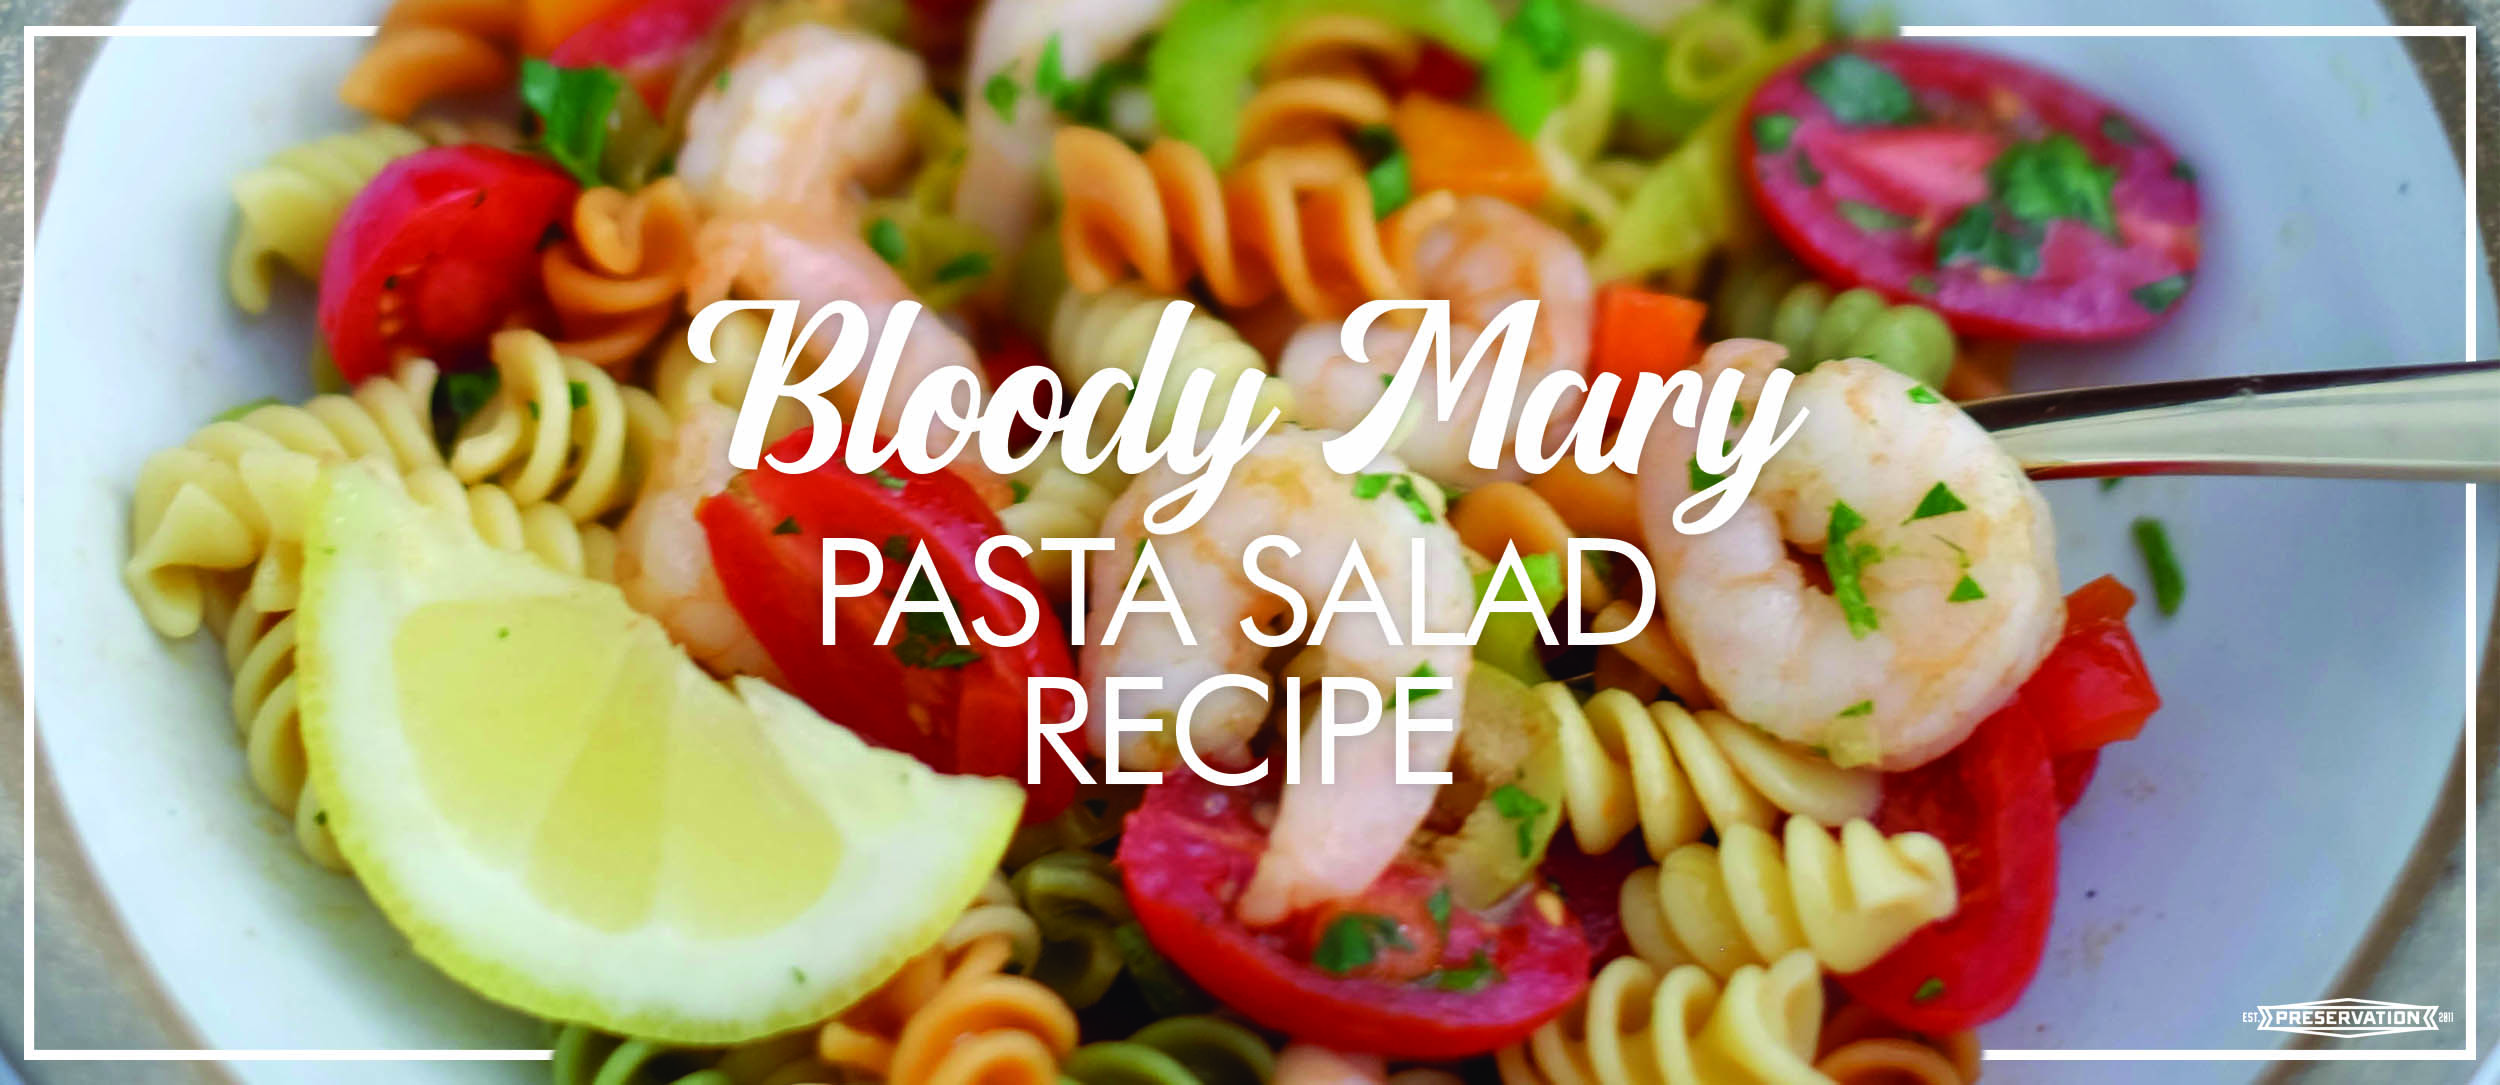 Bloody Mary Pasta Salad Banner.jpg